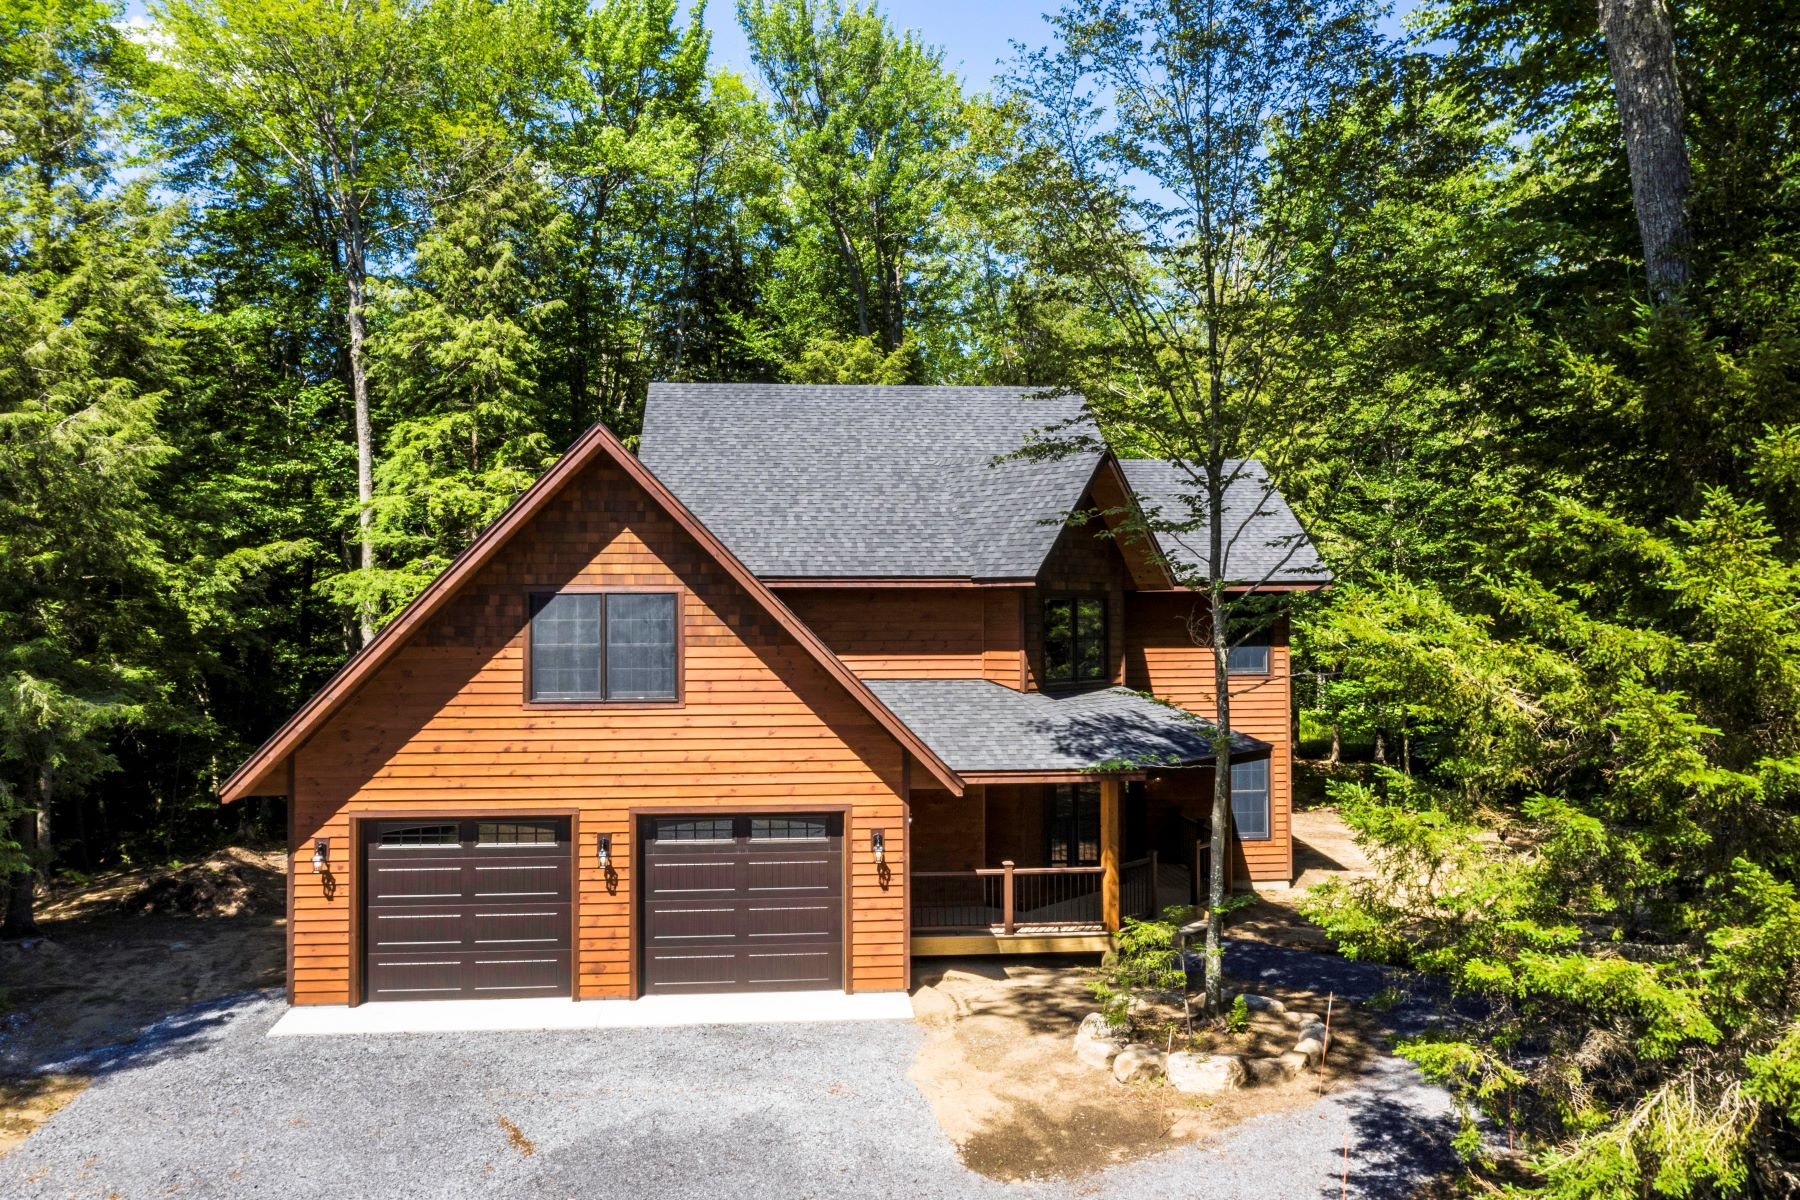 Single Family Homes for Active at Custom Home with Fourth Lake Dock and Beach Rights 2773 South Shore Road Old Forge, New York 13420 United States